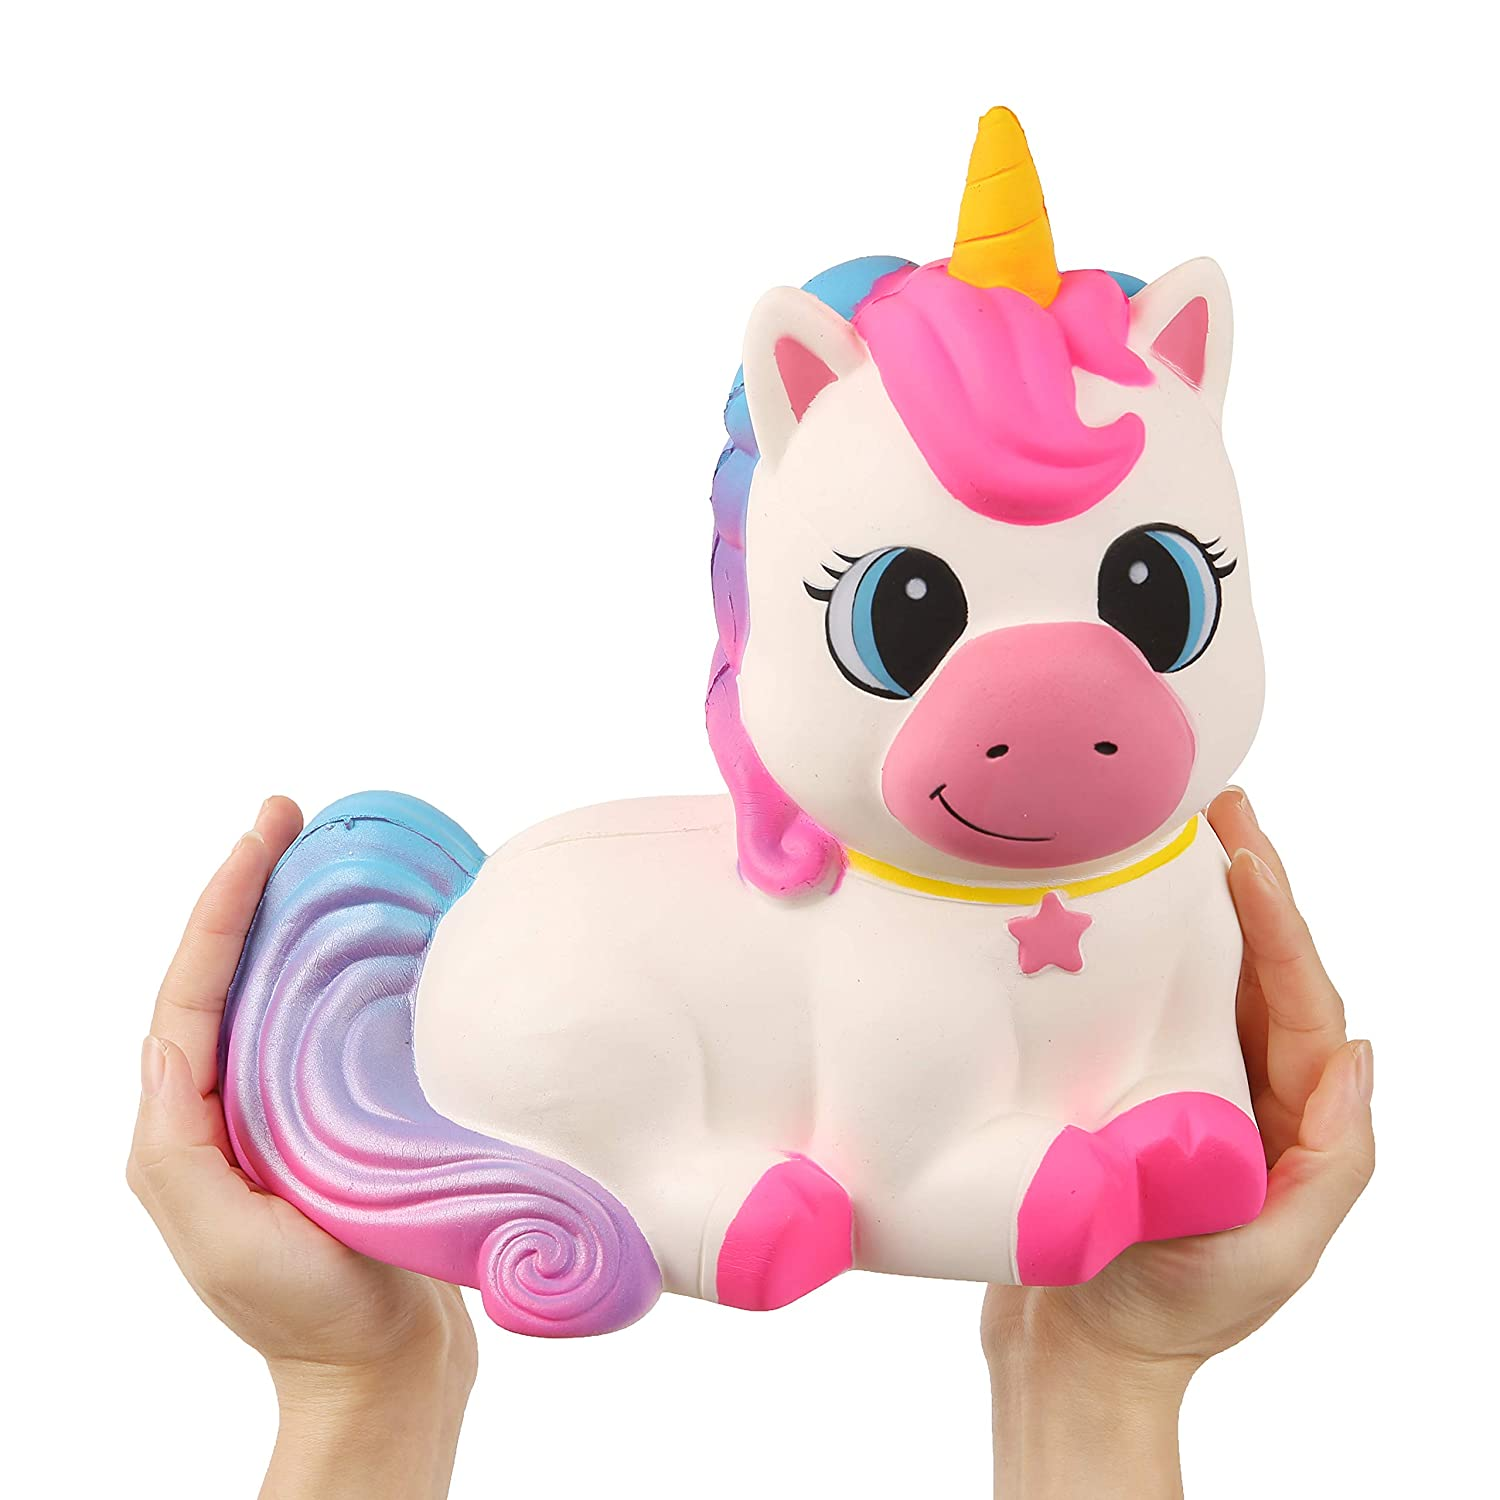 Anboor 9.1 Squishies Giant Unicorn Horse Jumbo Kawaii Soft Slow Rising Scented Huge Animal Stress Relief Kid Toys Decorative Props